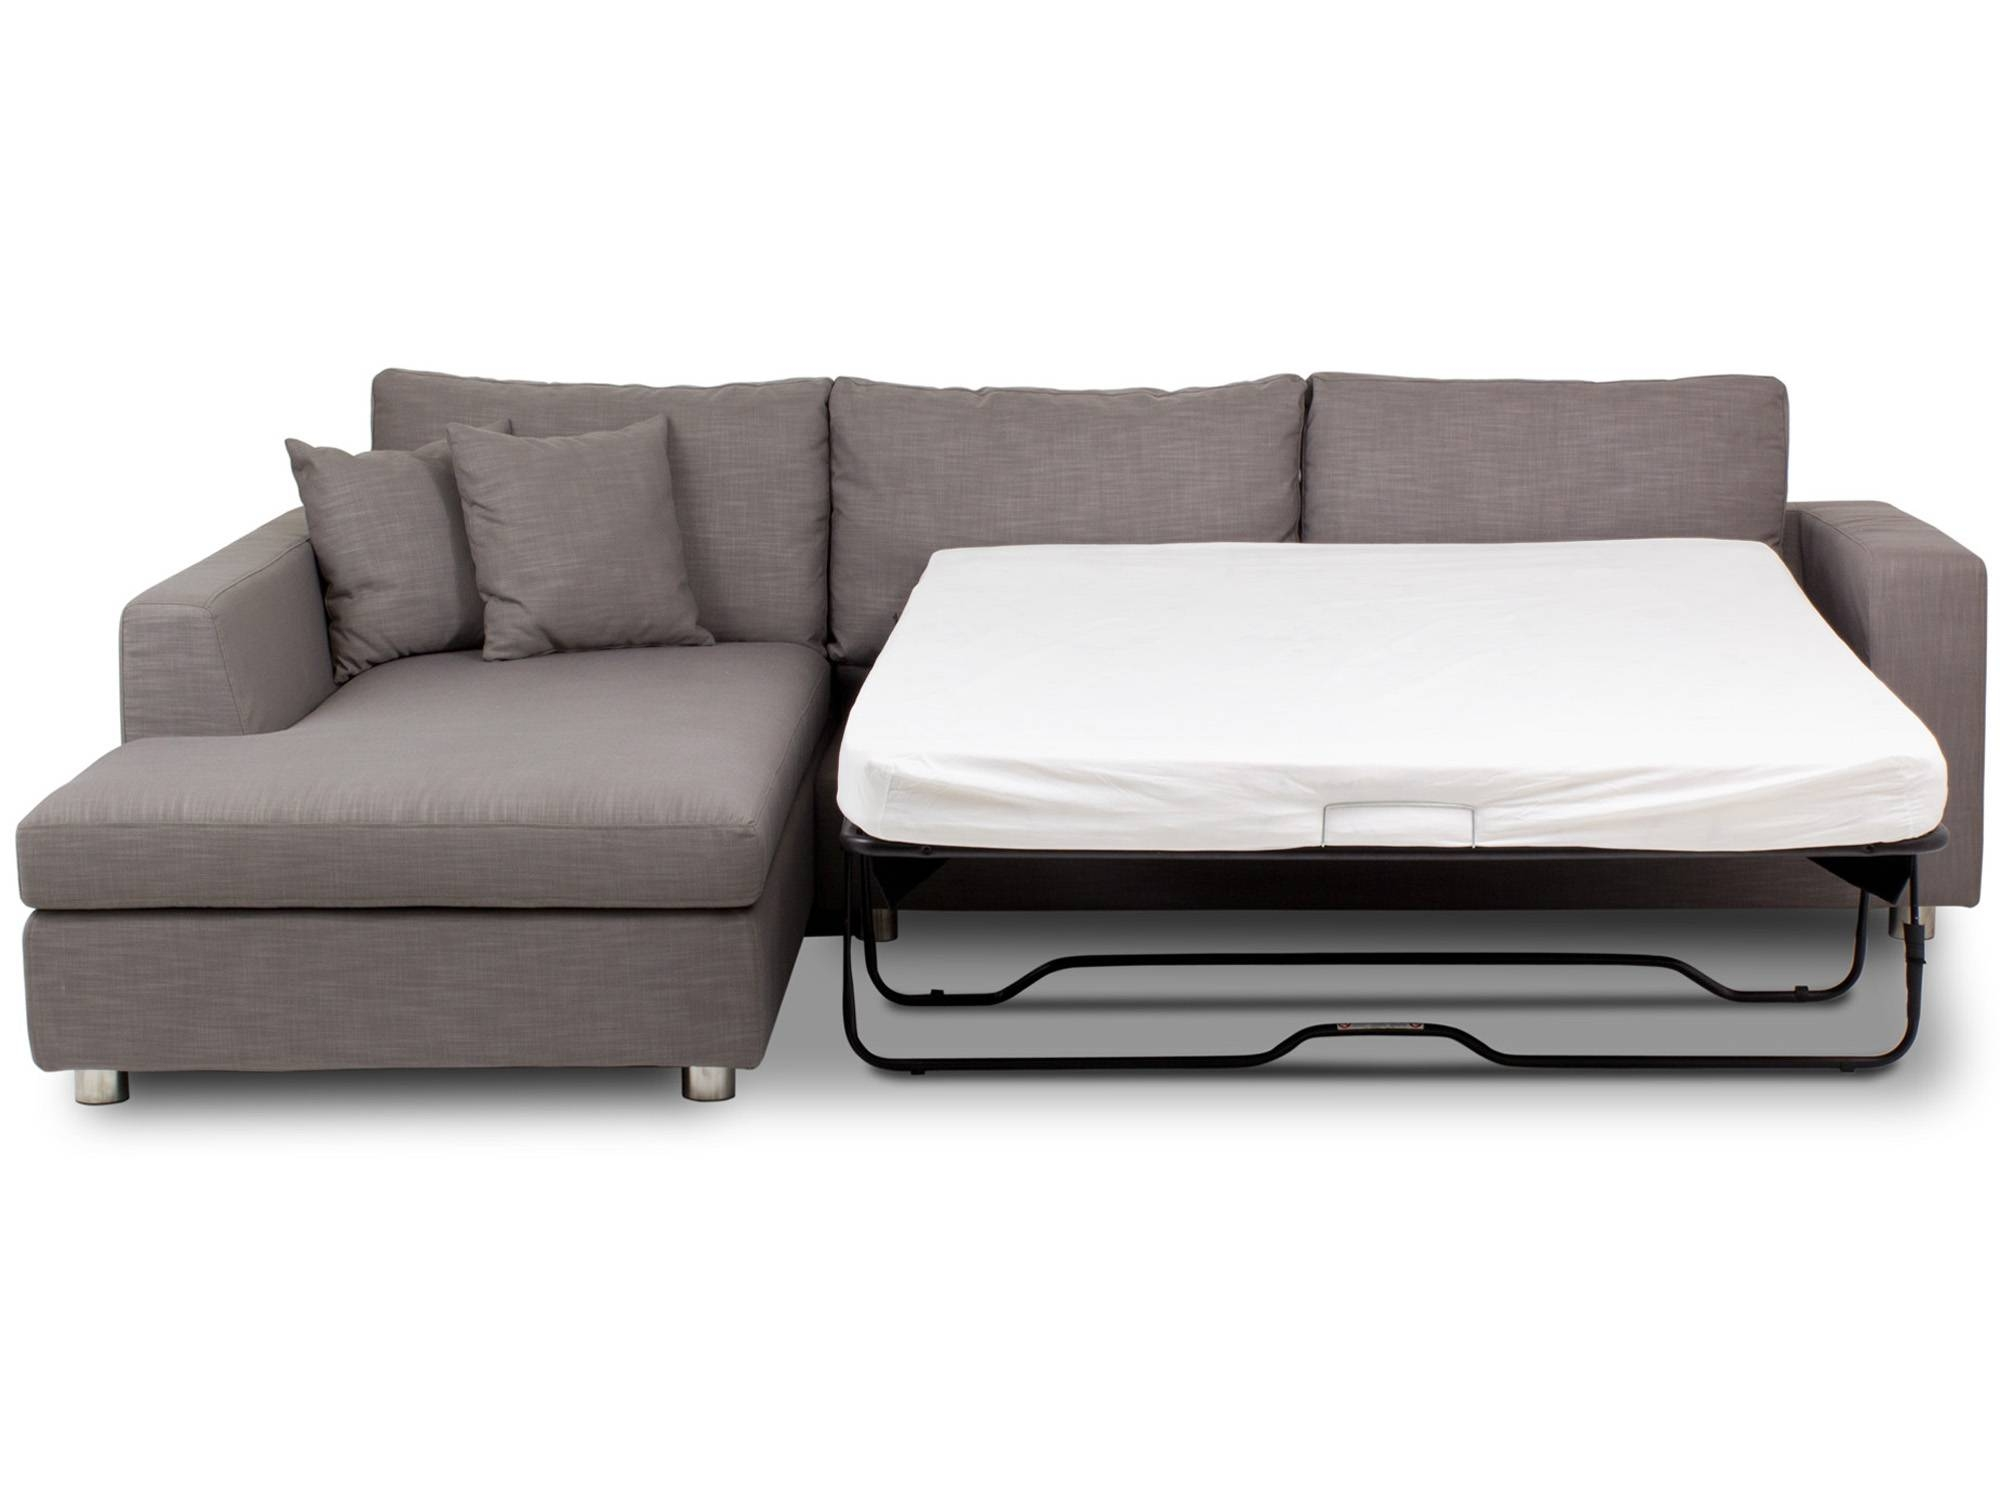 Chaise Sofa Sleeper With Storage | Tehranmix Decoration with Sofa Beds With Storages (Image 7 of 30)